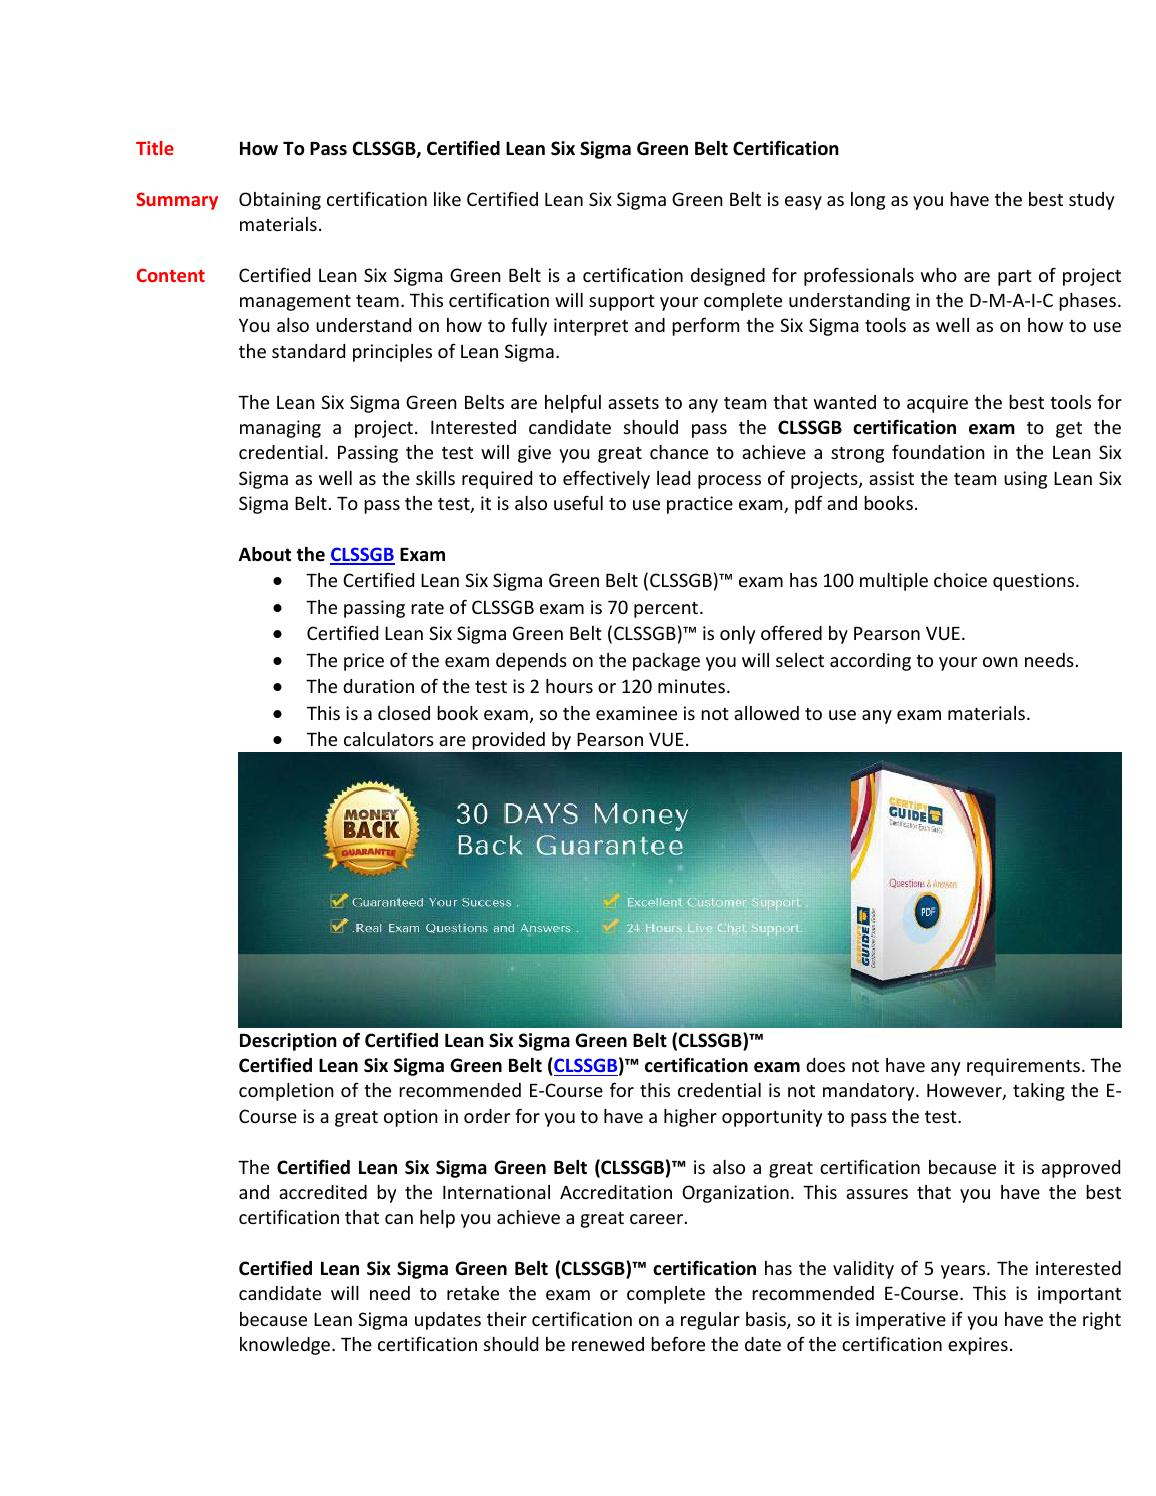 Clssgb Certification Test By Susanfisher10 Issuu